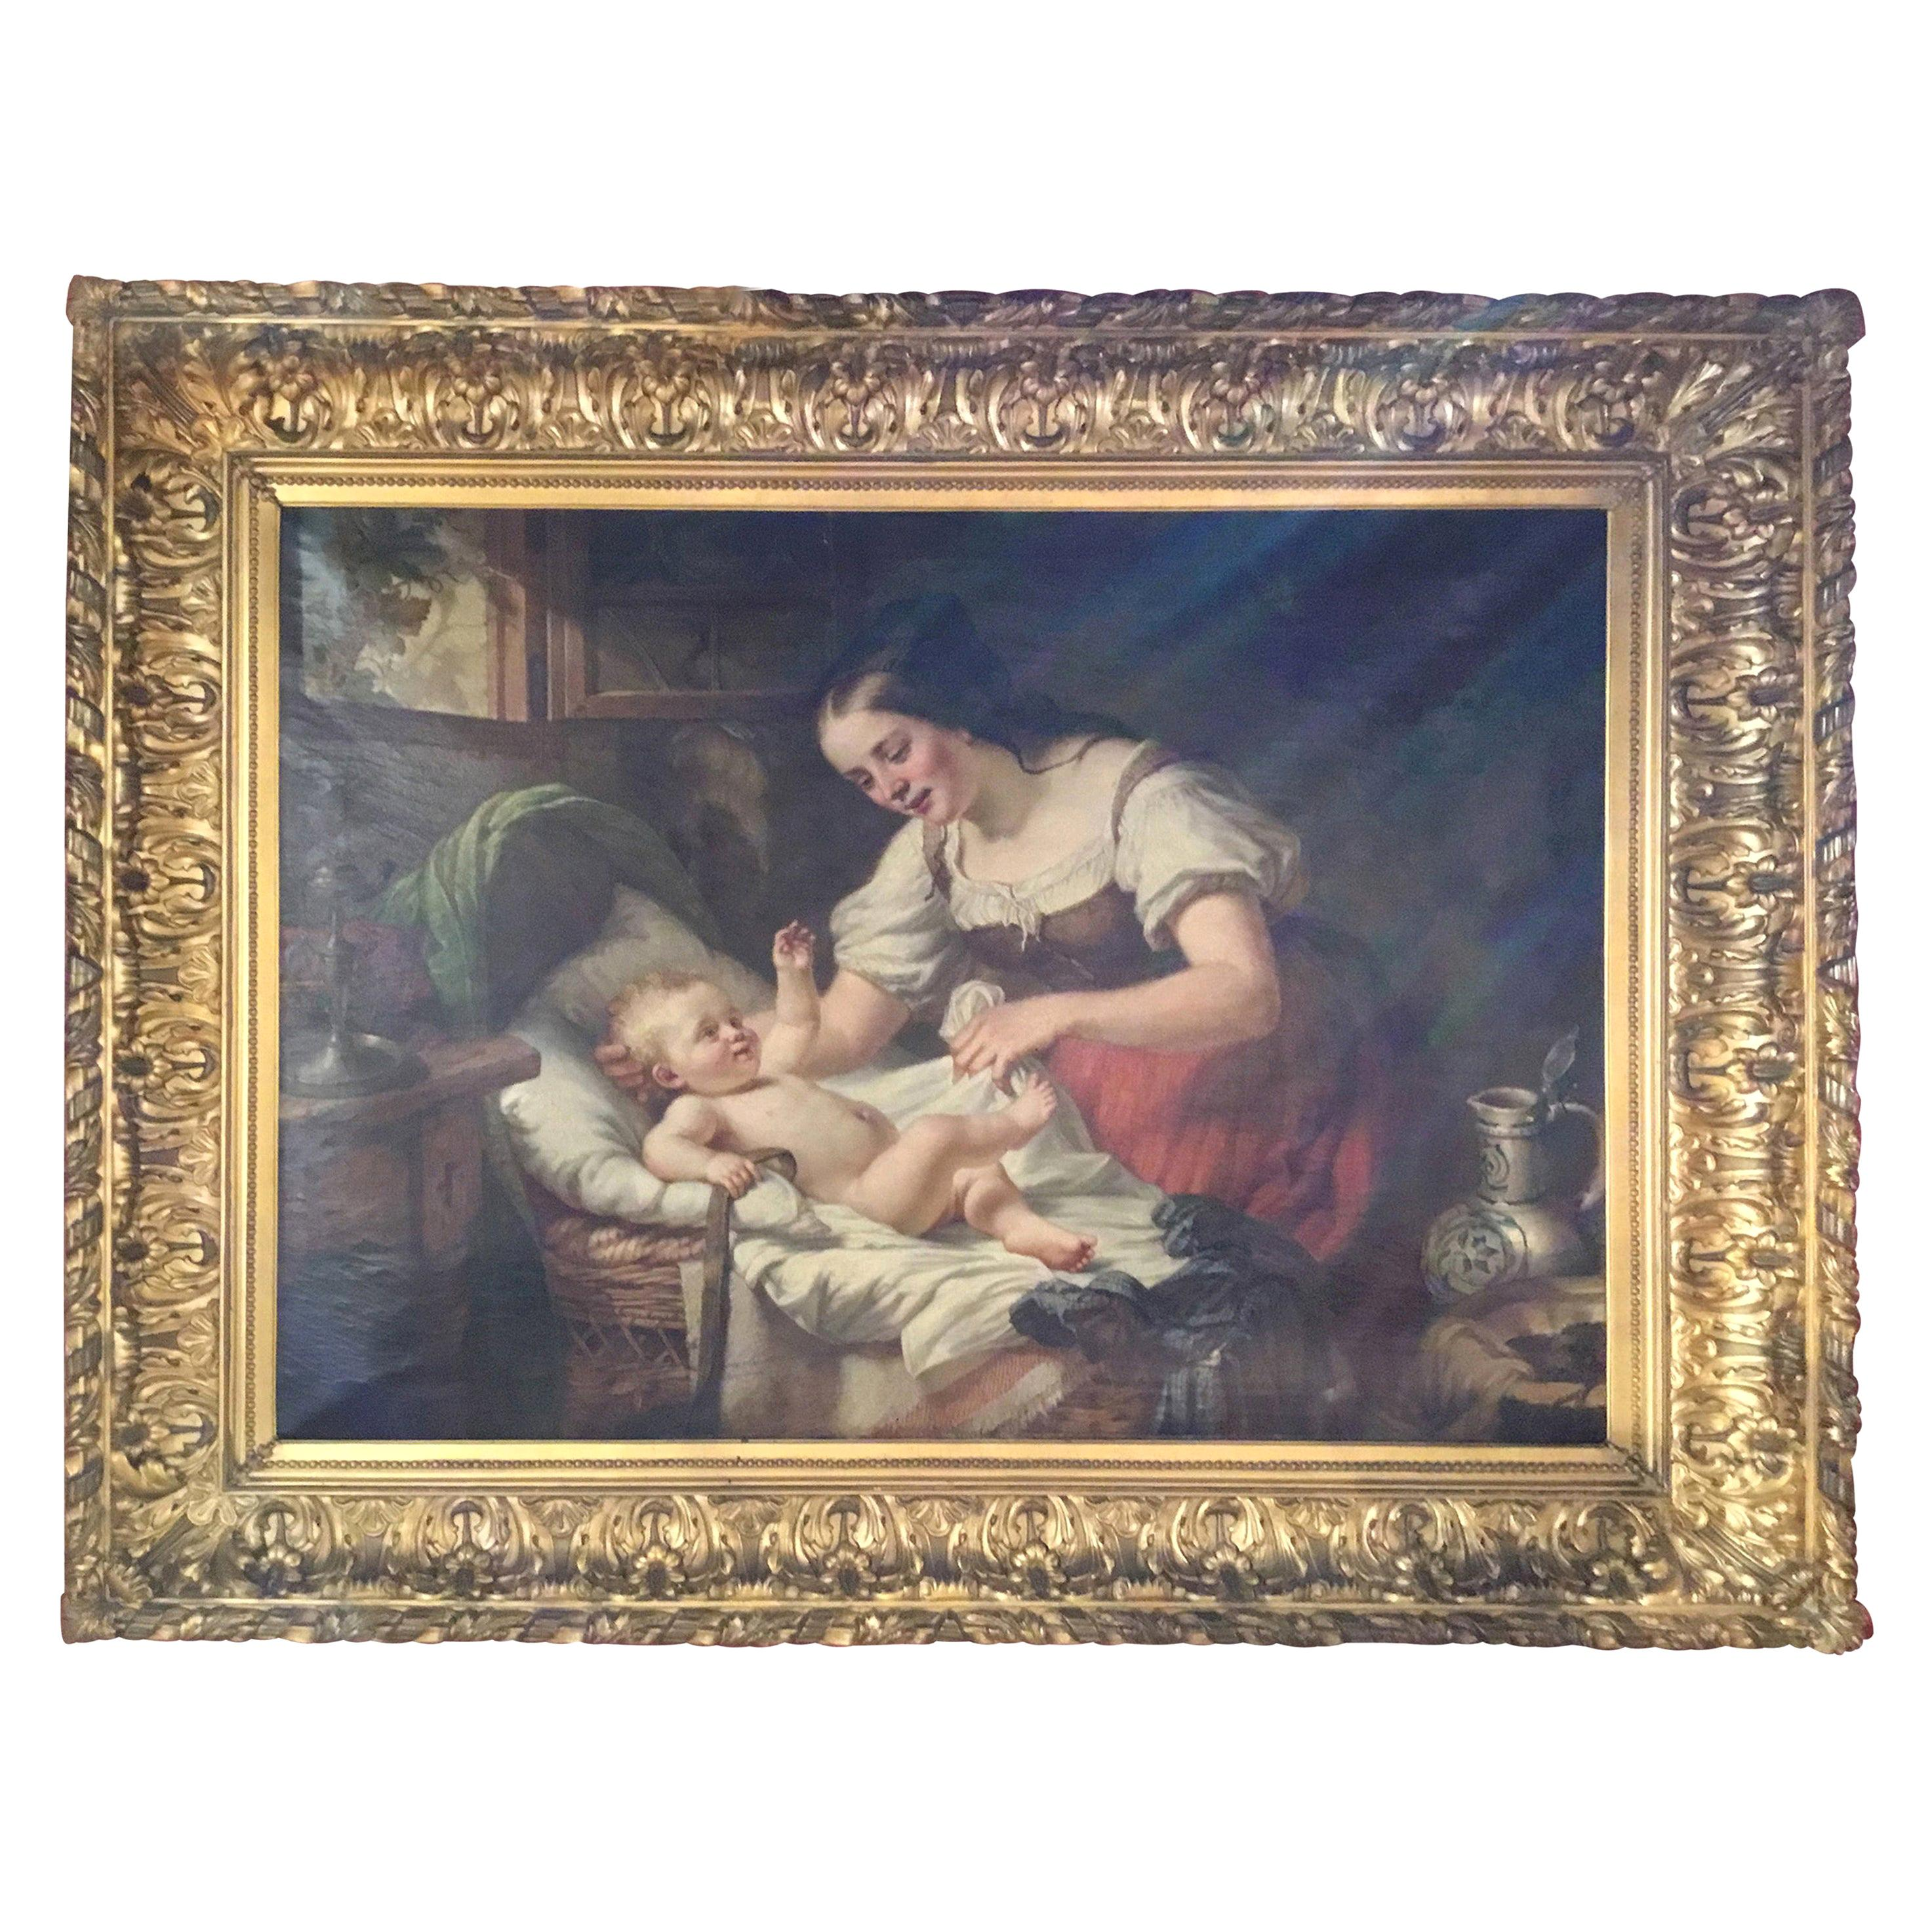 19th Century German Oil Painting Signed H Oehmichen of a Mother and Child